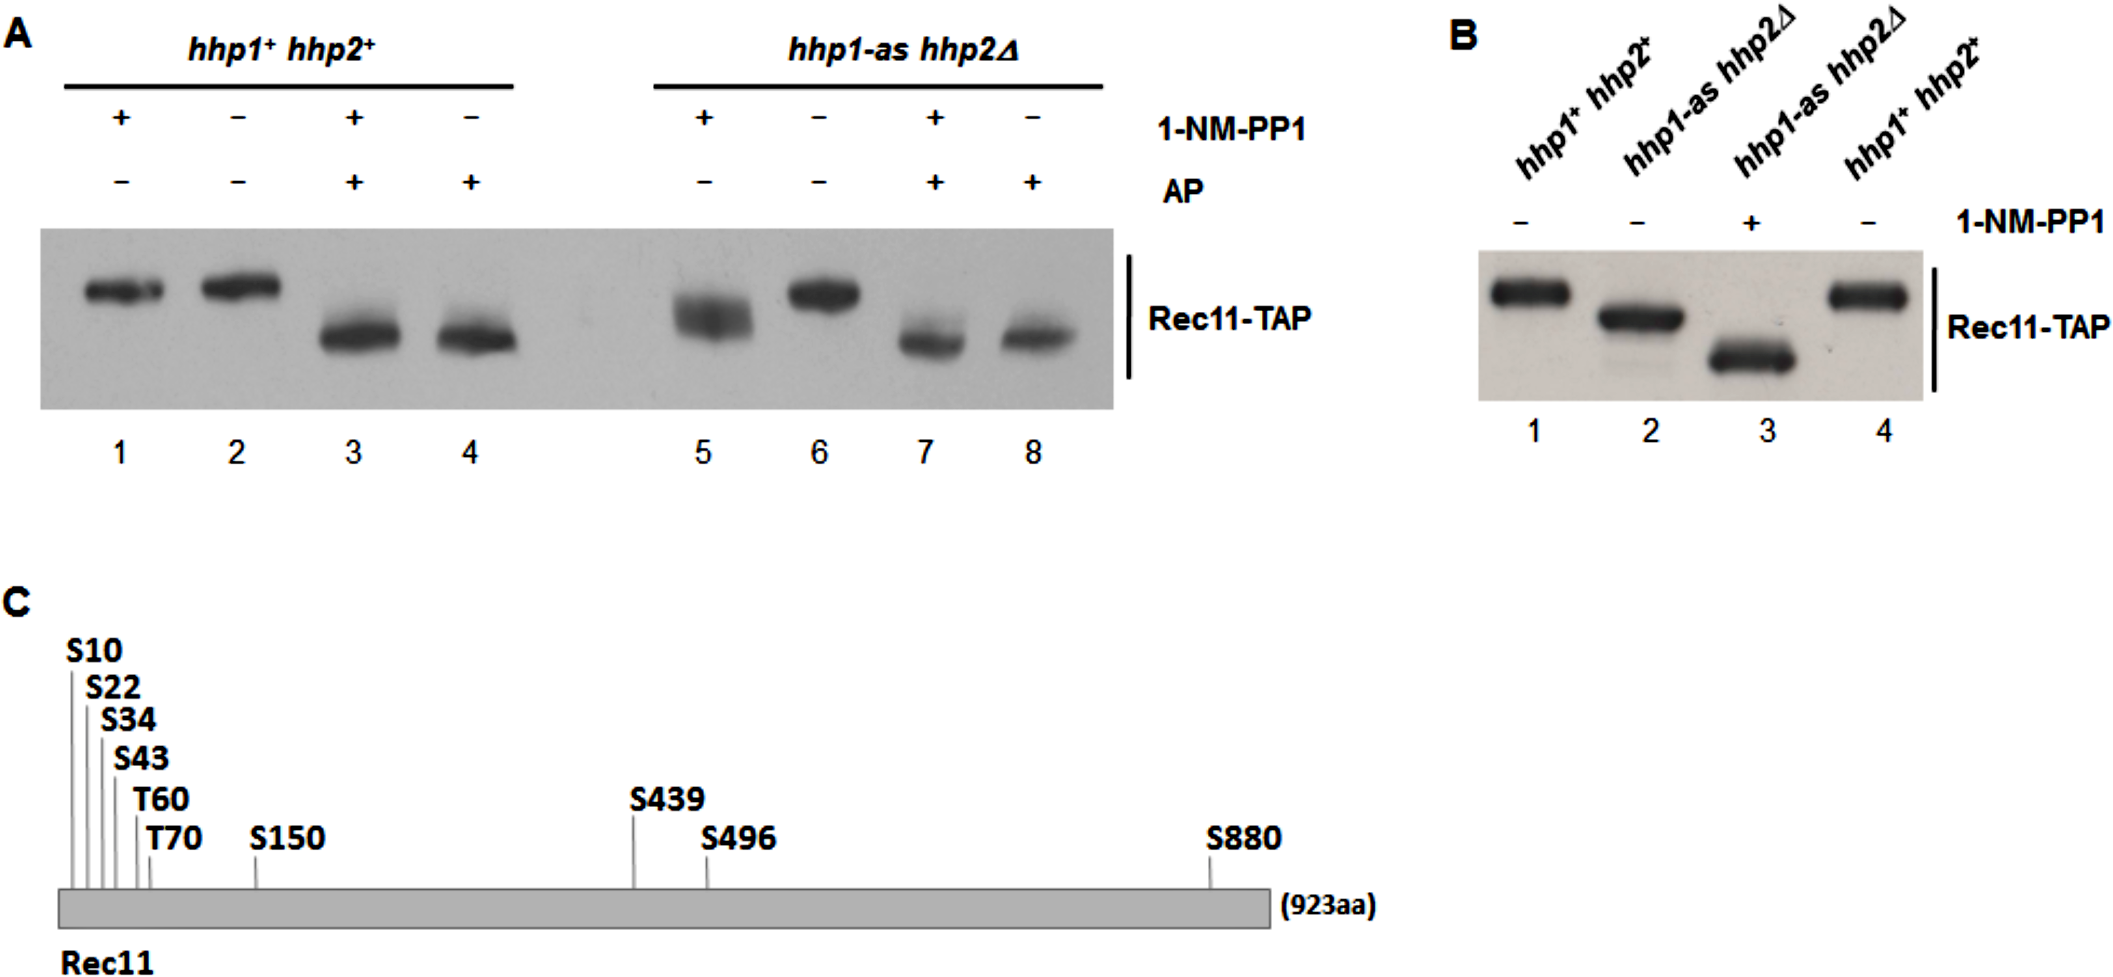 Rec11 is phosphorylated during meiosis, at least partially dependent on Hhp.